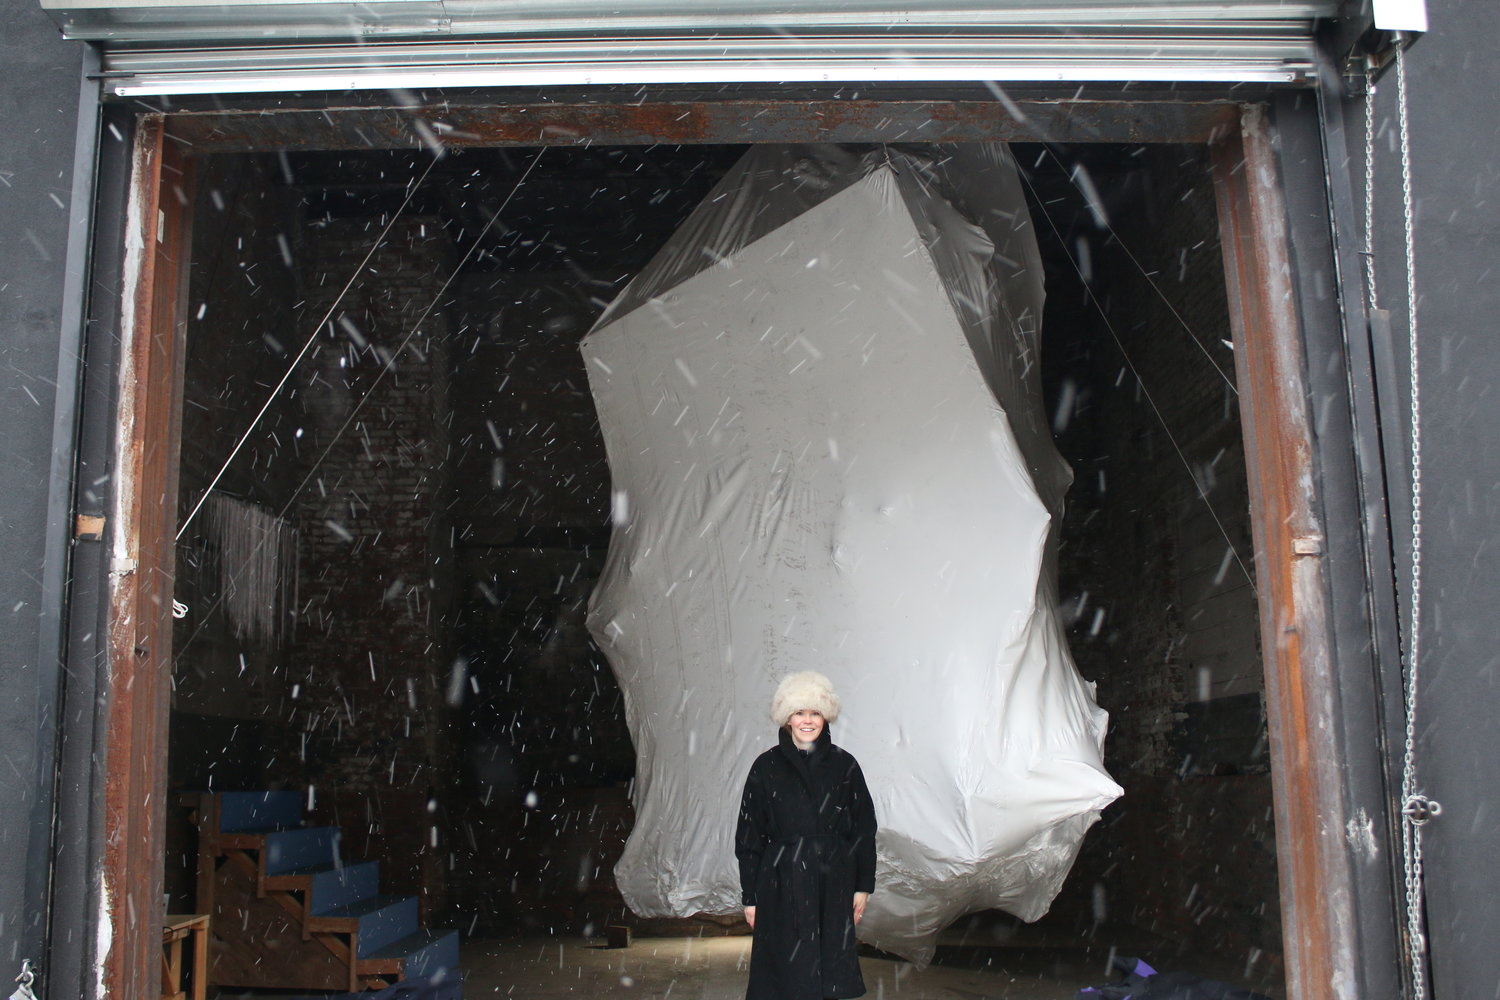 Riitta Ikonen  built a life-sized iceberg in the space, which referred to glaciers and their fate in the age of the Anthropocene.